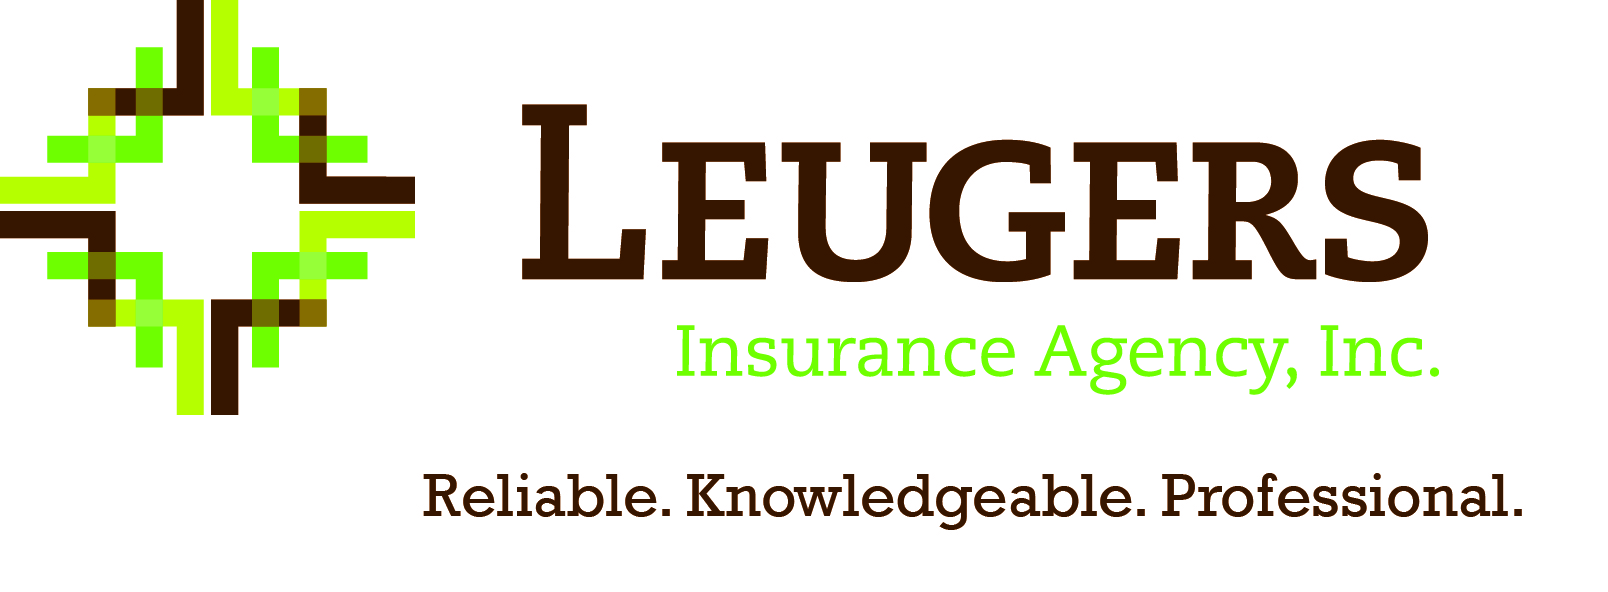 Leugers Insurance Agency, Inc.